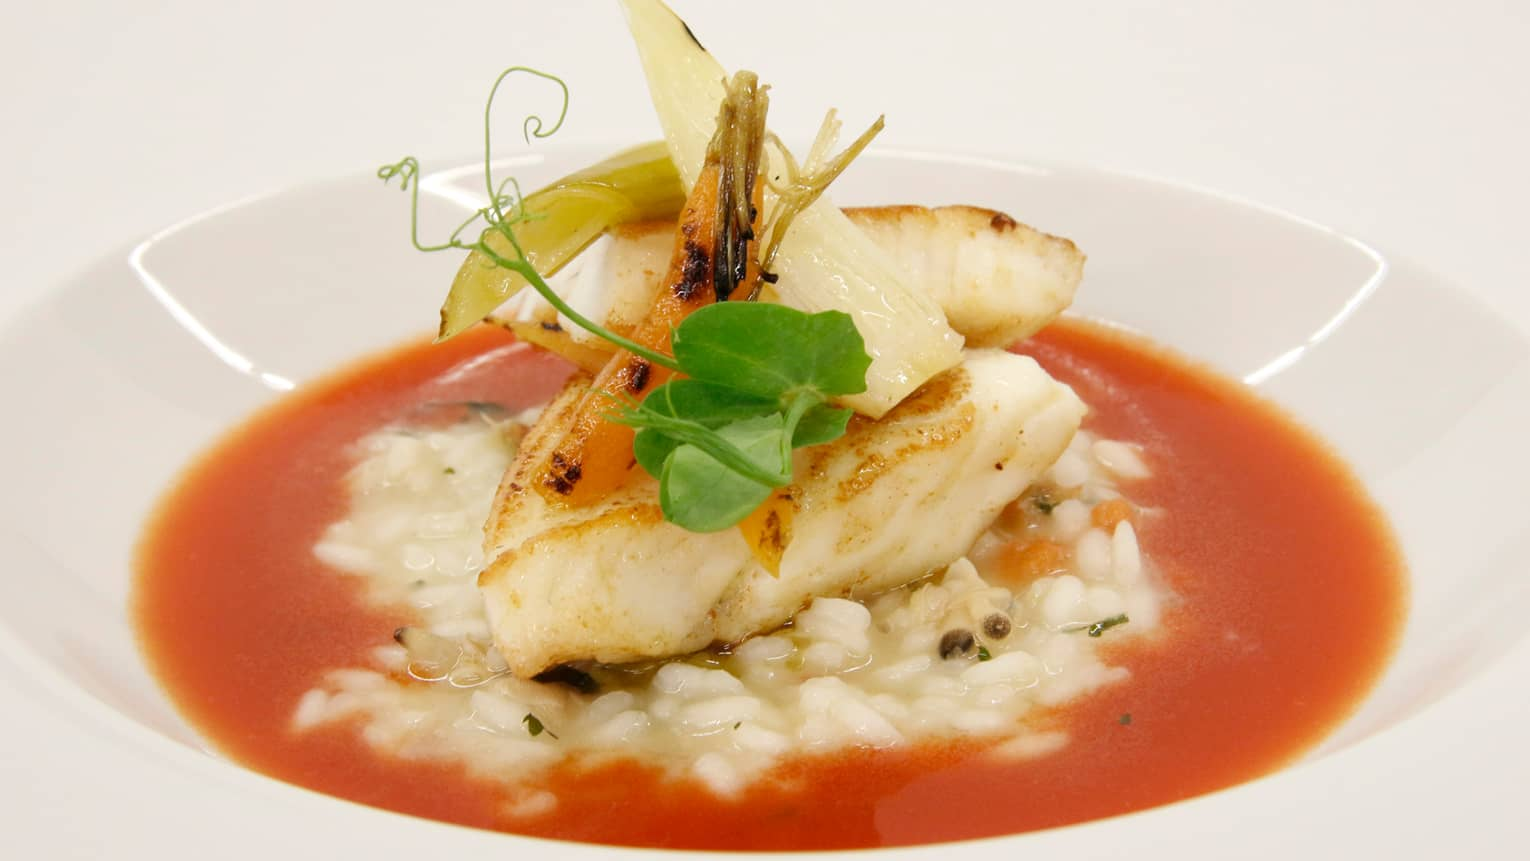 John Dory Fillet of white fish over red vinaigrette chili shiso and Japanese rice